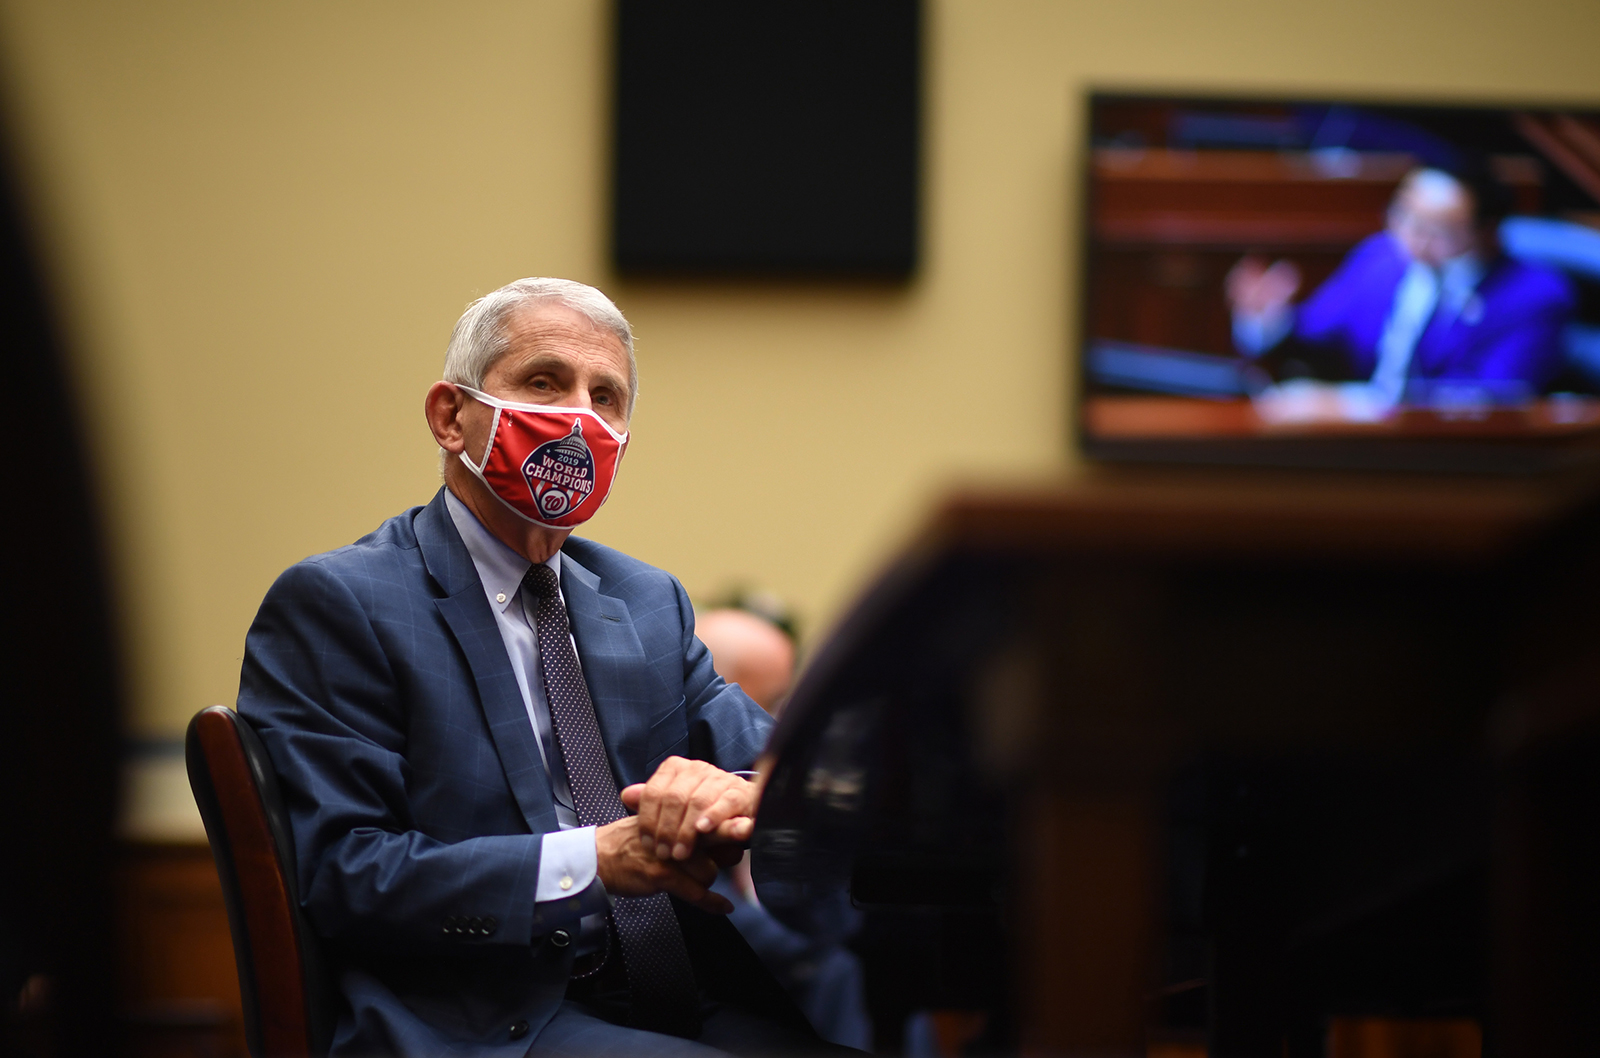 Dr. Anthony Fauci, director of the National Institute for Allergy and Infectious Diseases, testifies before a House Subcommittee on the Coronavirus Crisis hearing on July 31 in Washington.